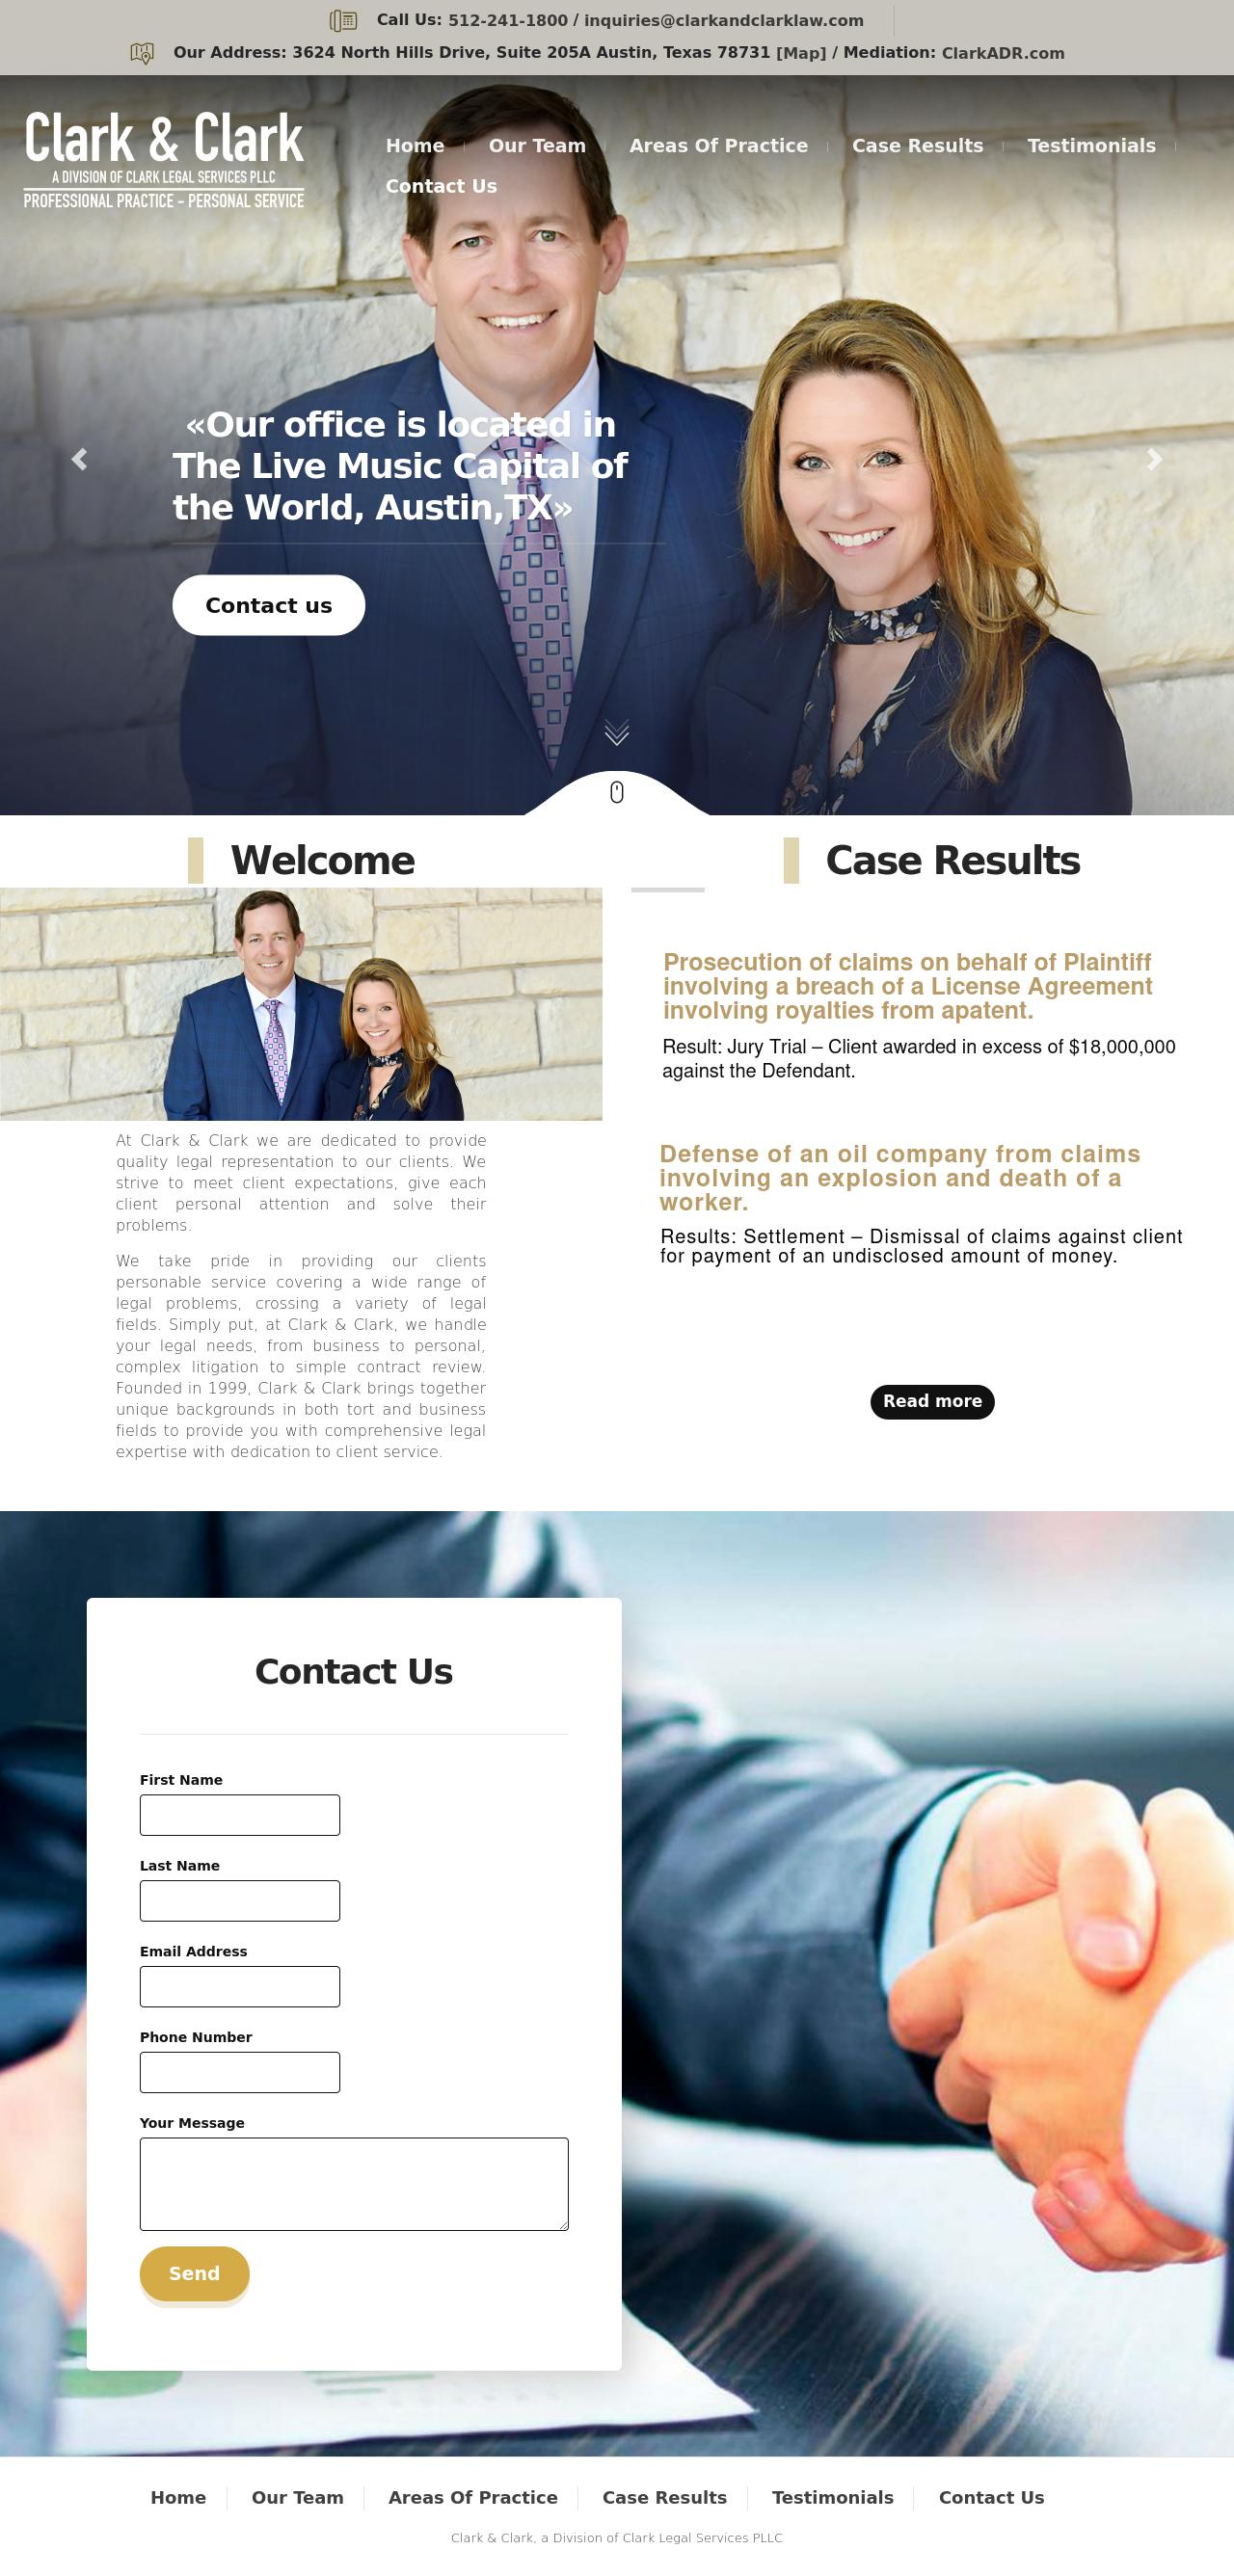 Clark and Clark - Austin TX Lawyers